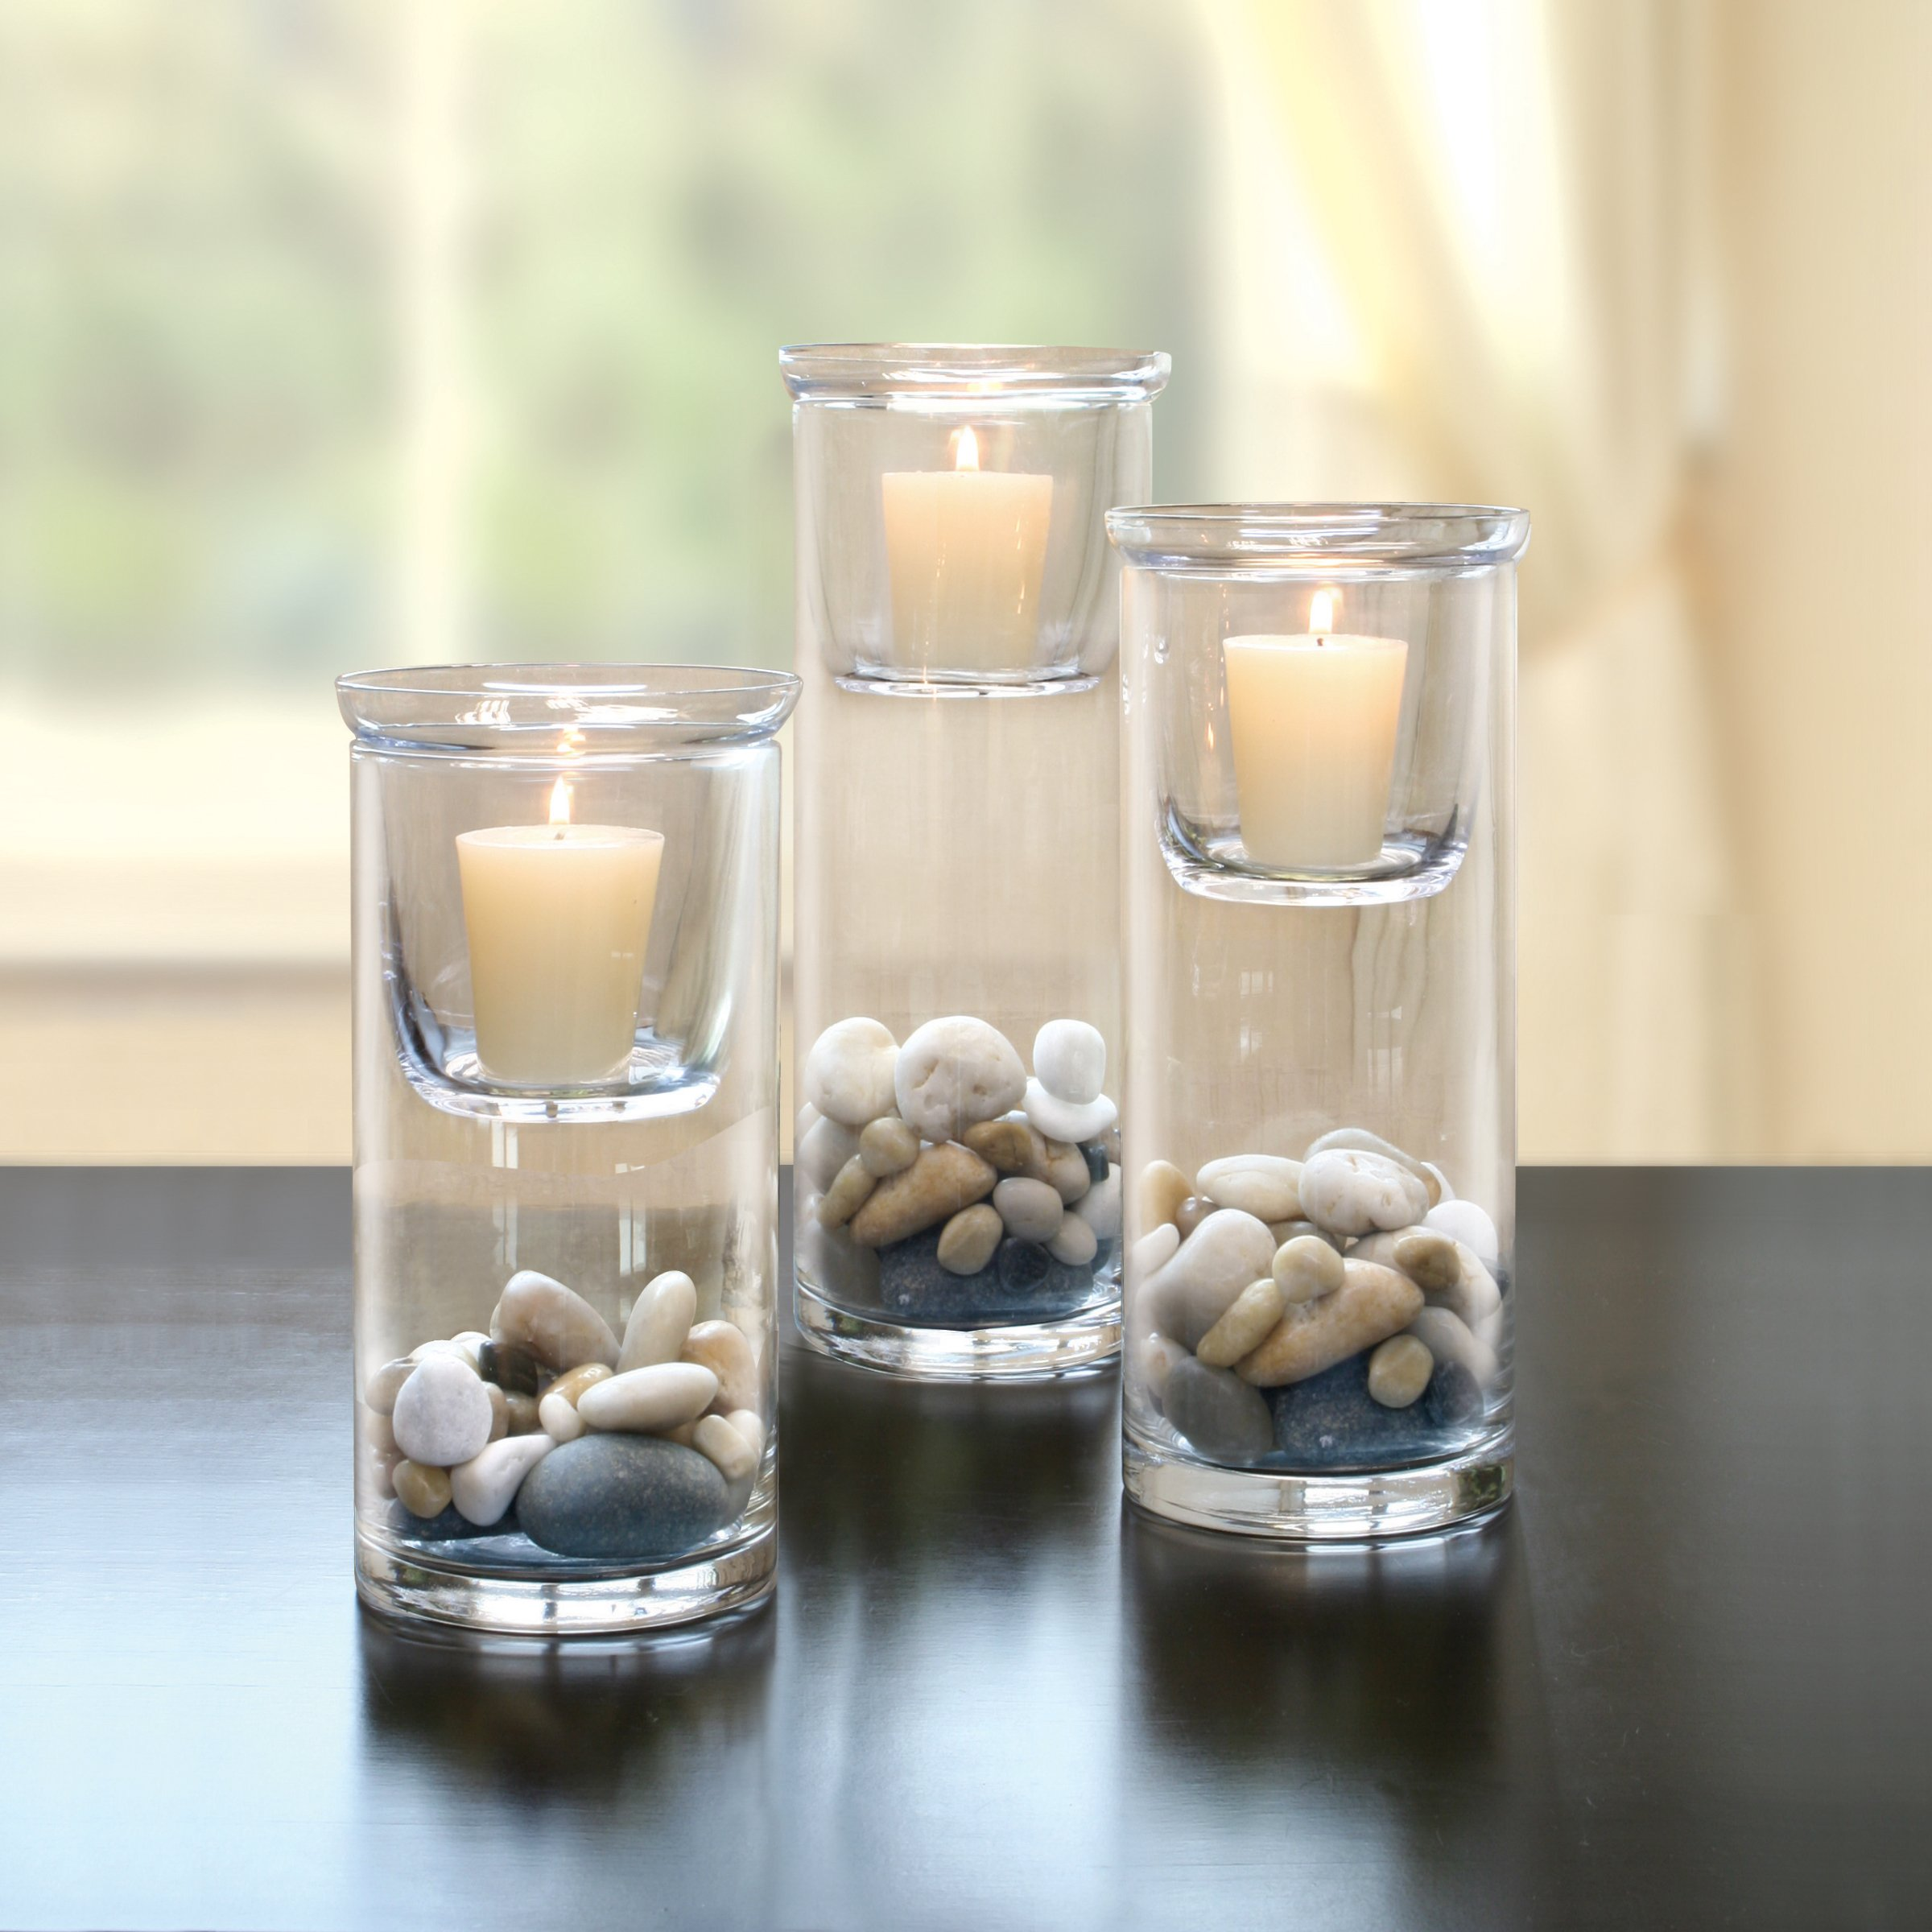 Stonebriar Cylinder Glass Hurricane Set with Removable Votive Candle Holder Inserts, Traditional Home Decor for Dining Room, Living Room, and Bedroom, Decorative Centerpiece by Stonebriar (Image #6)